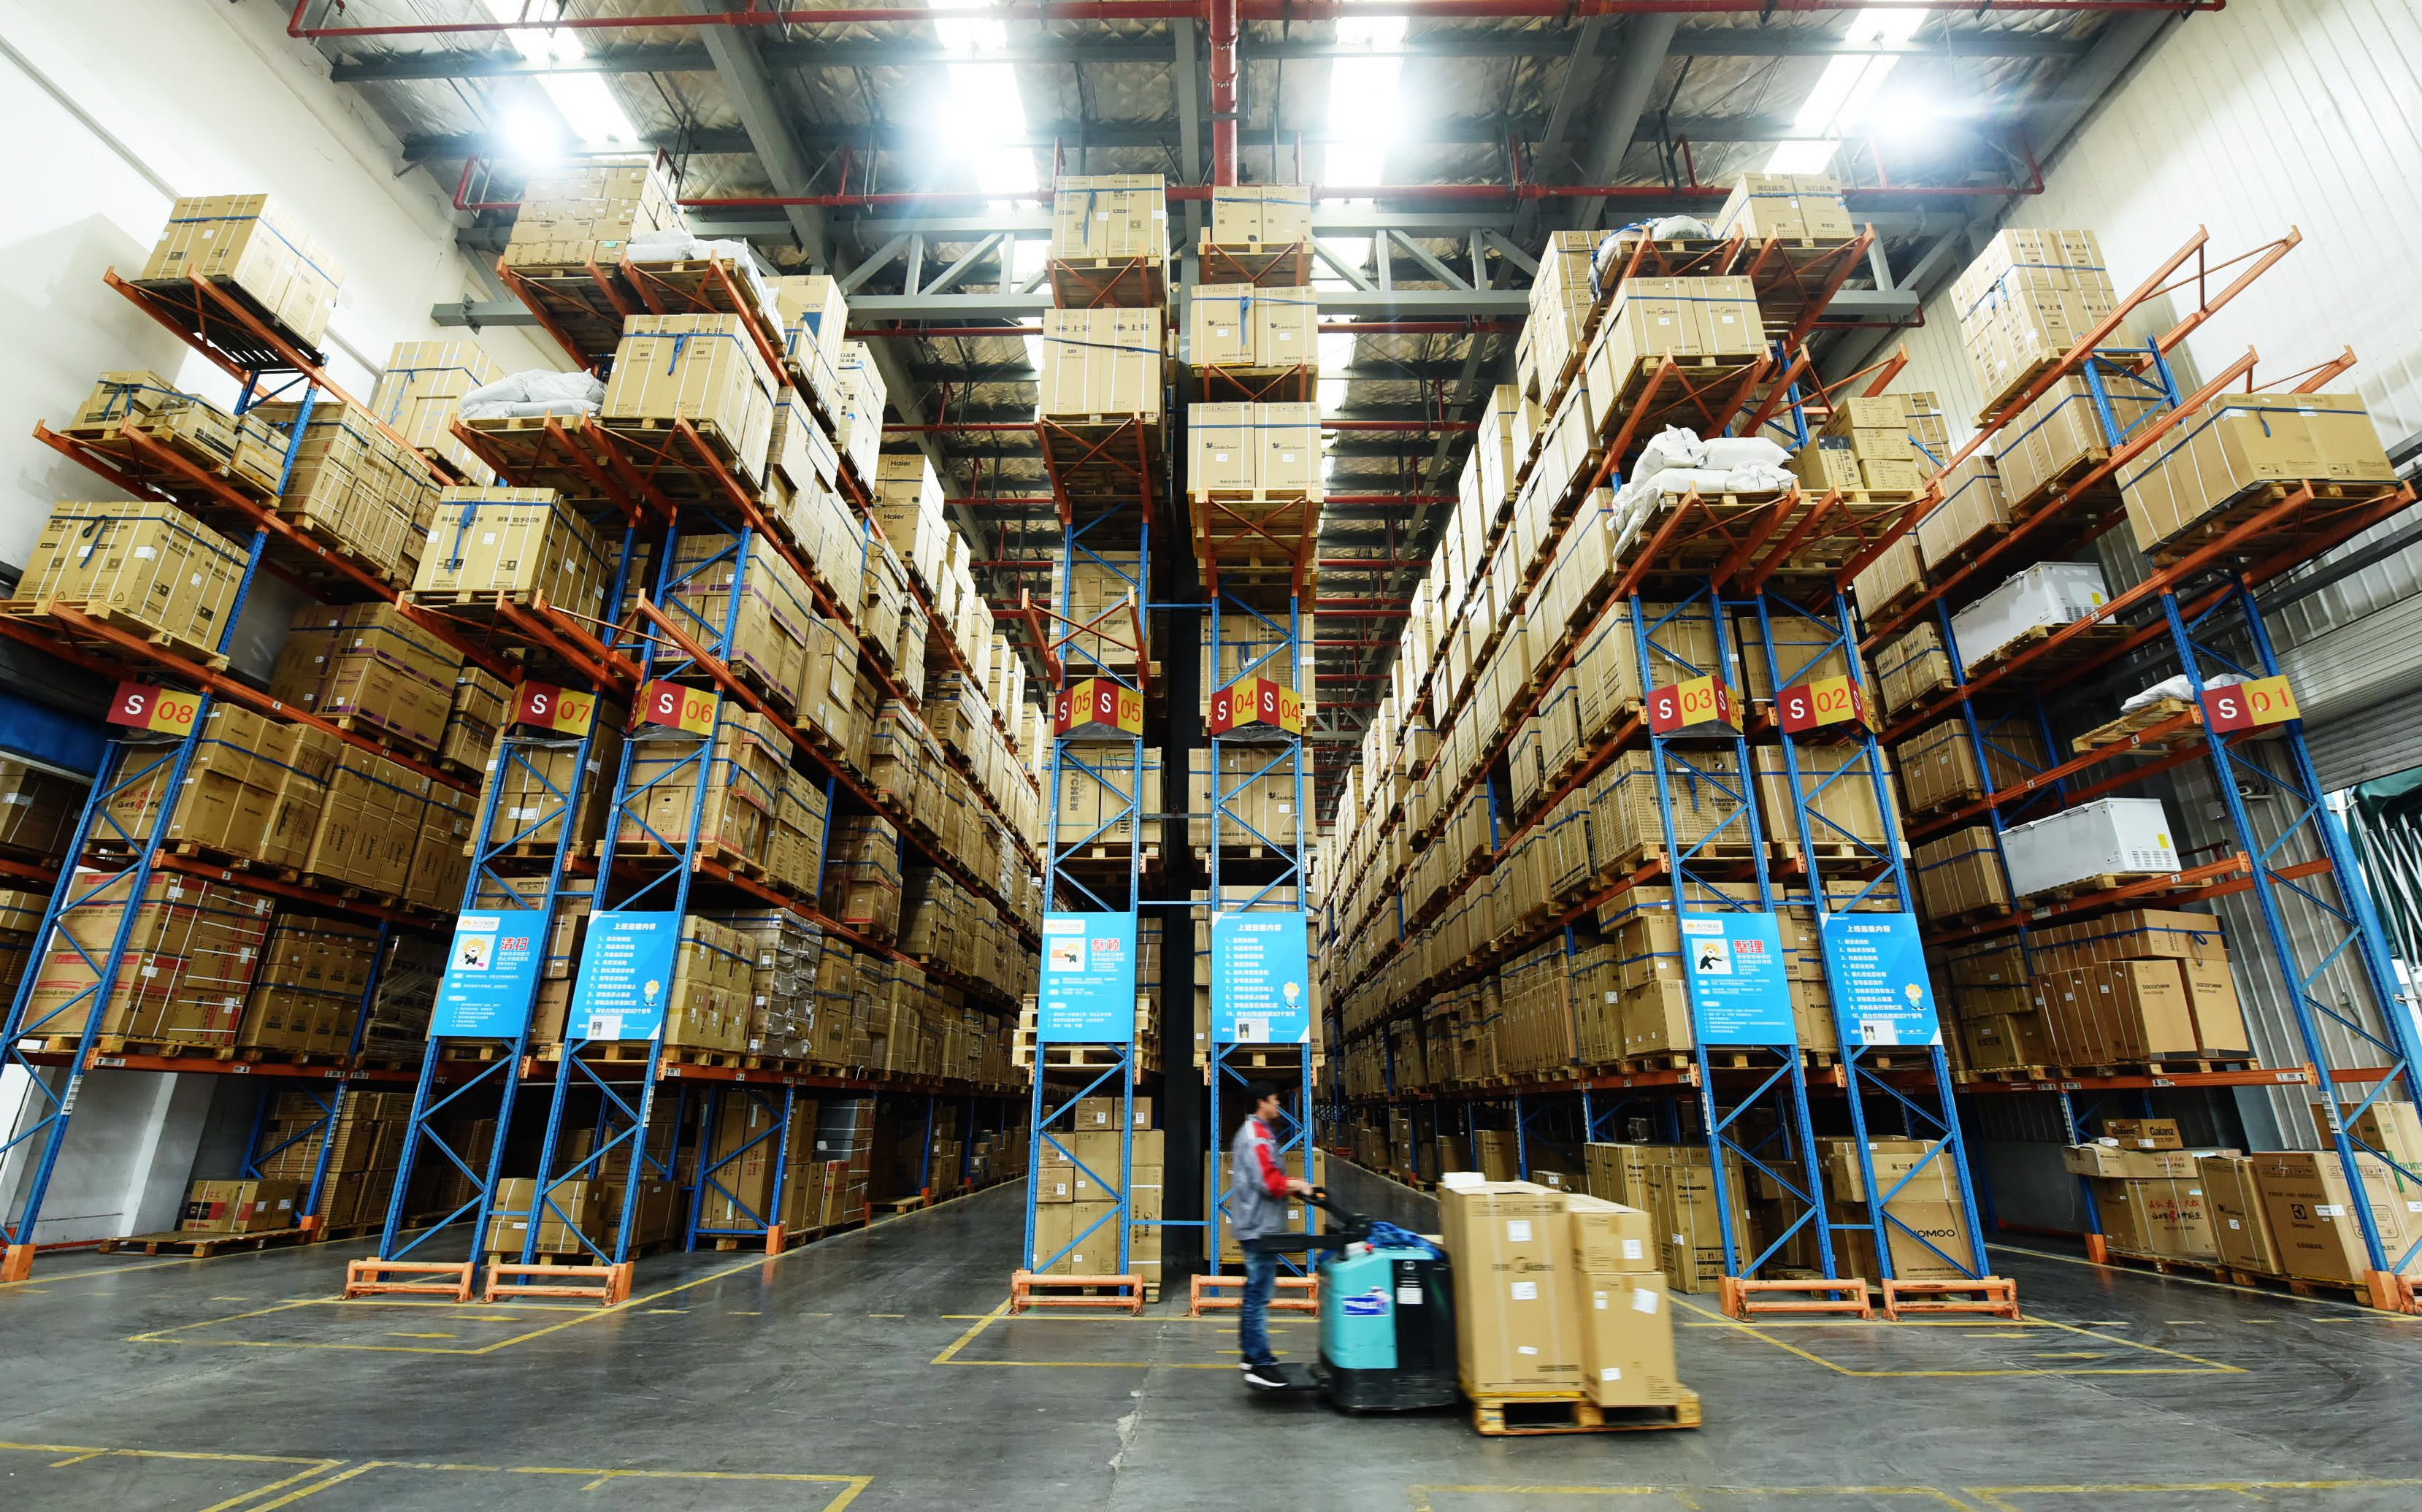 Investing in China real estate, warehouses on the back of e-commerce boom